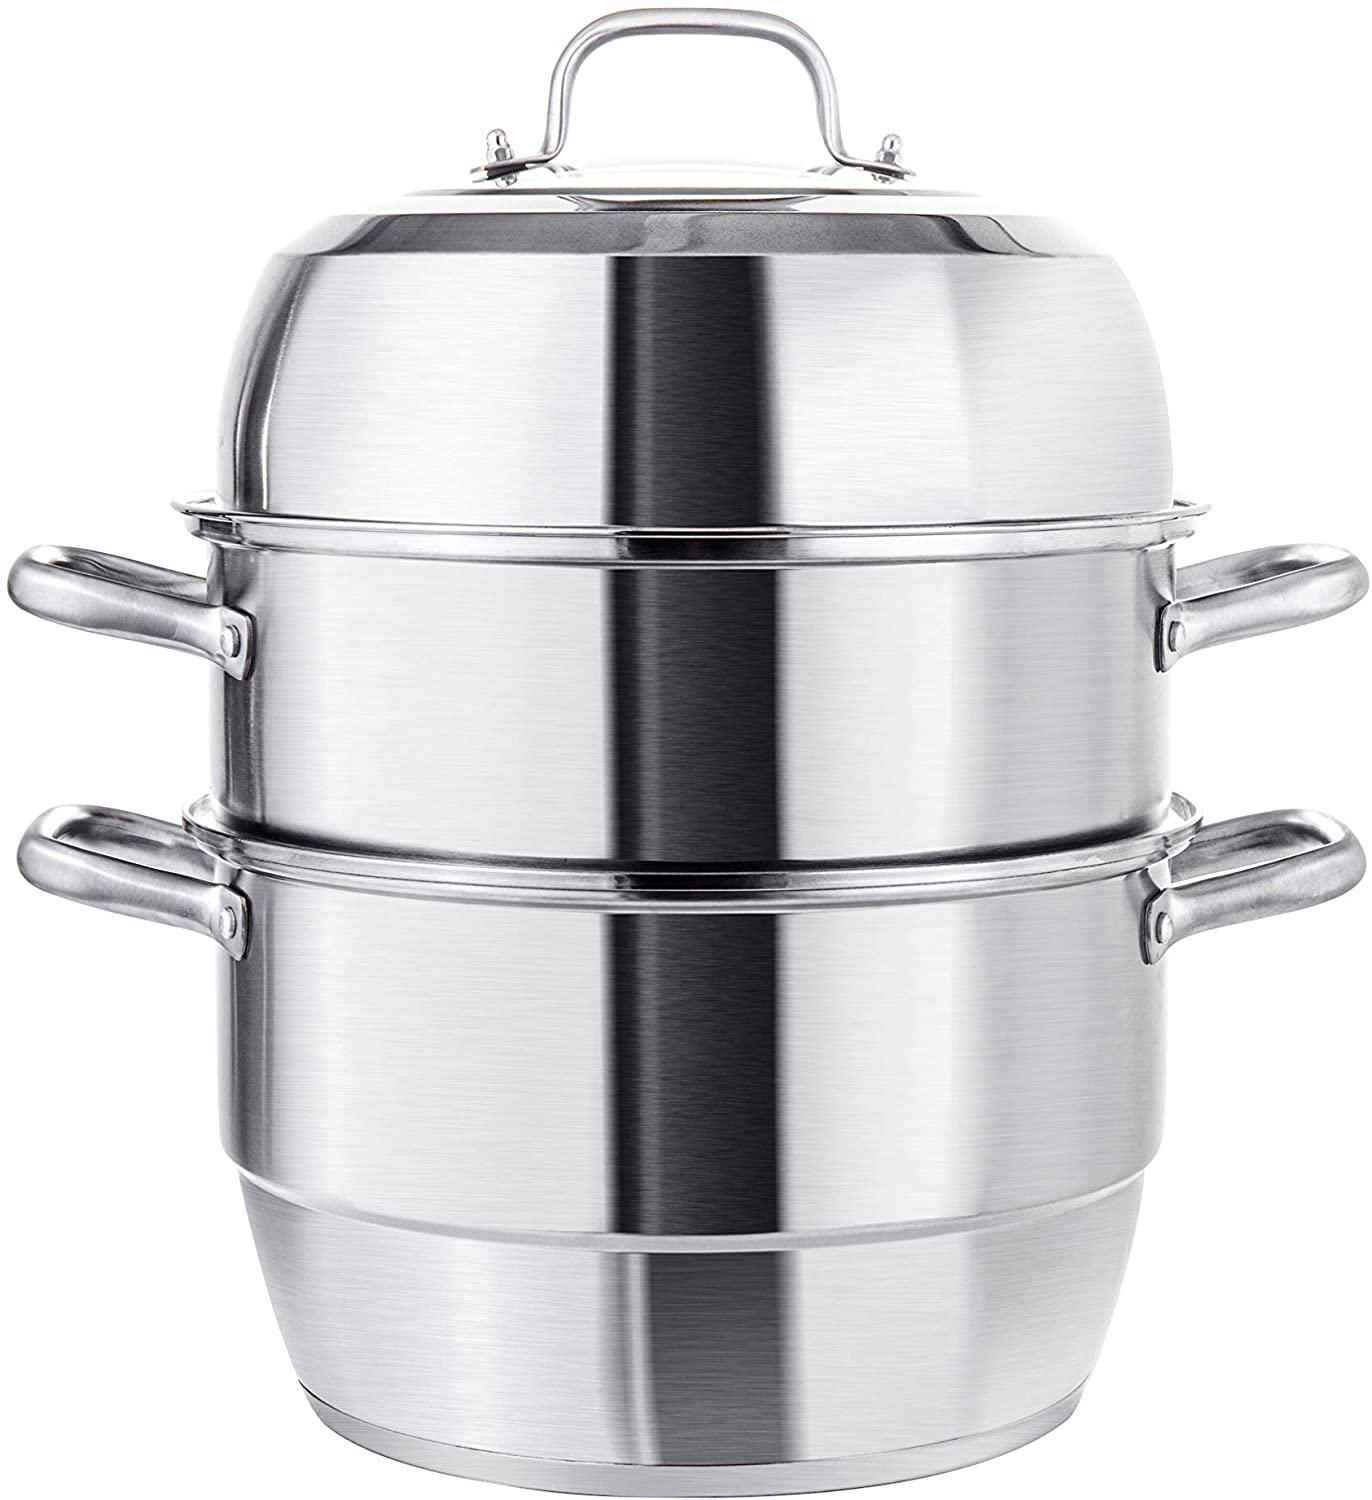 VENTION Heavy Duty Stainless Steel Steamer Pot, Triple-Tier Food Grade Stacked Stream Pot, 19 Quarts